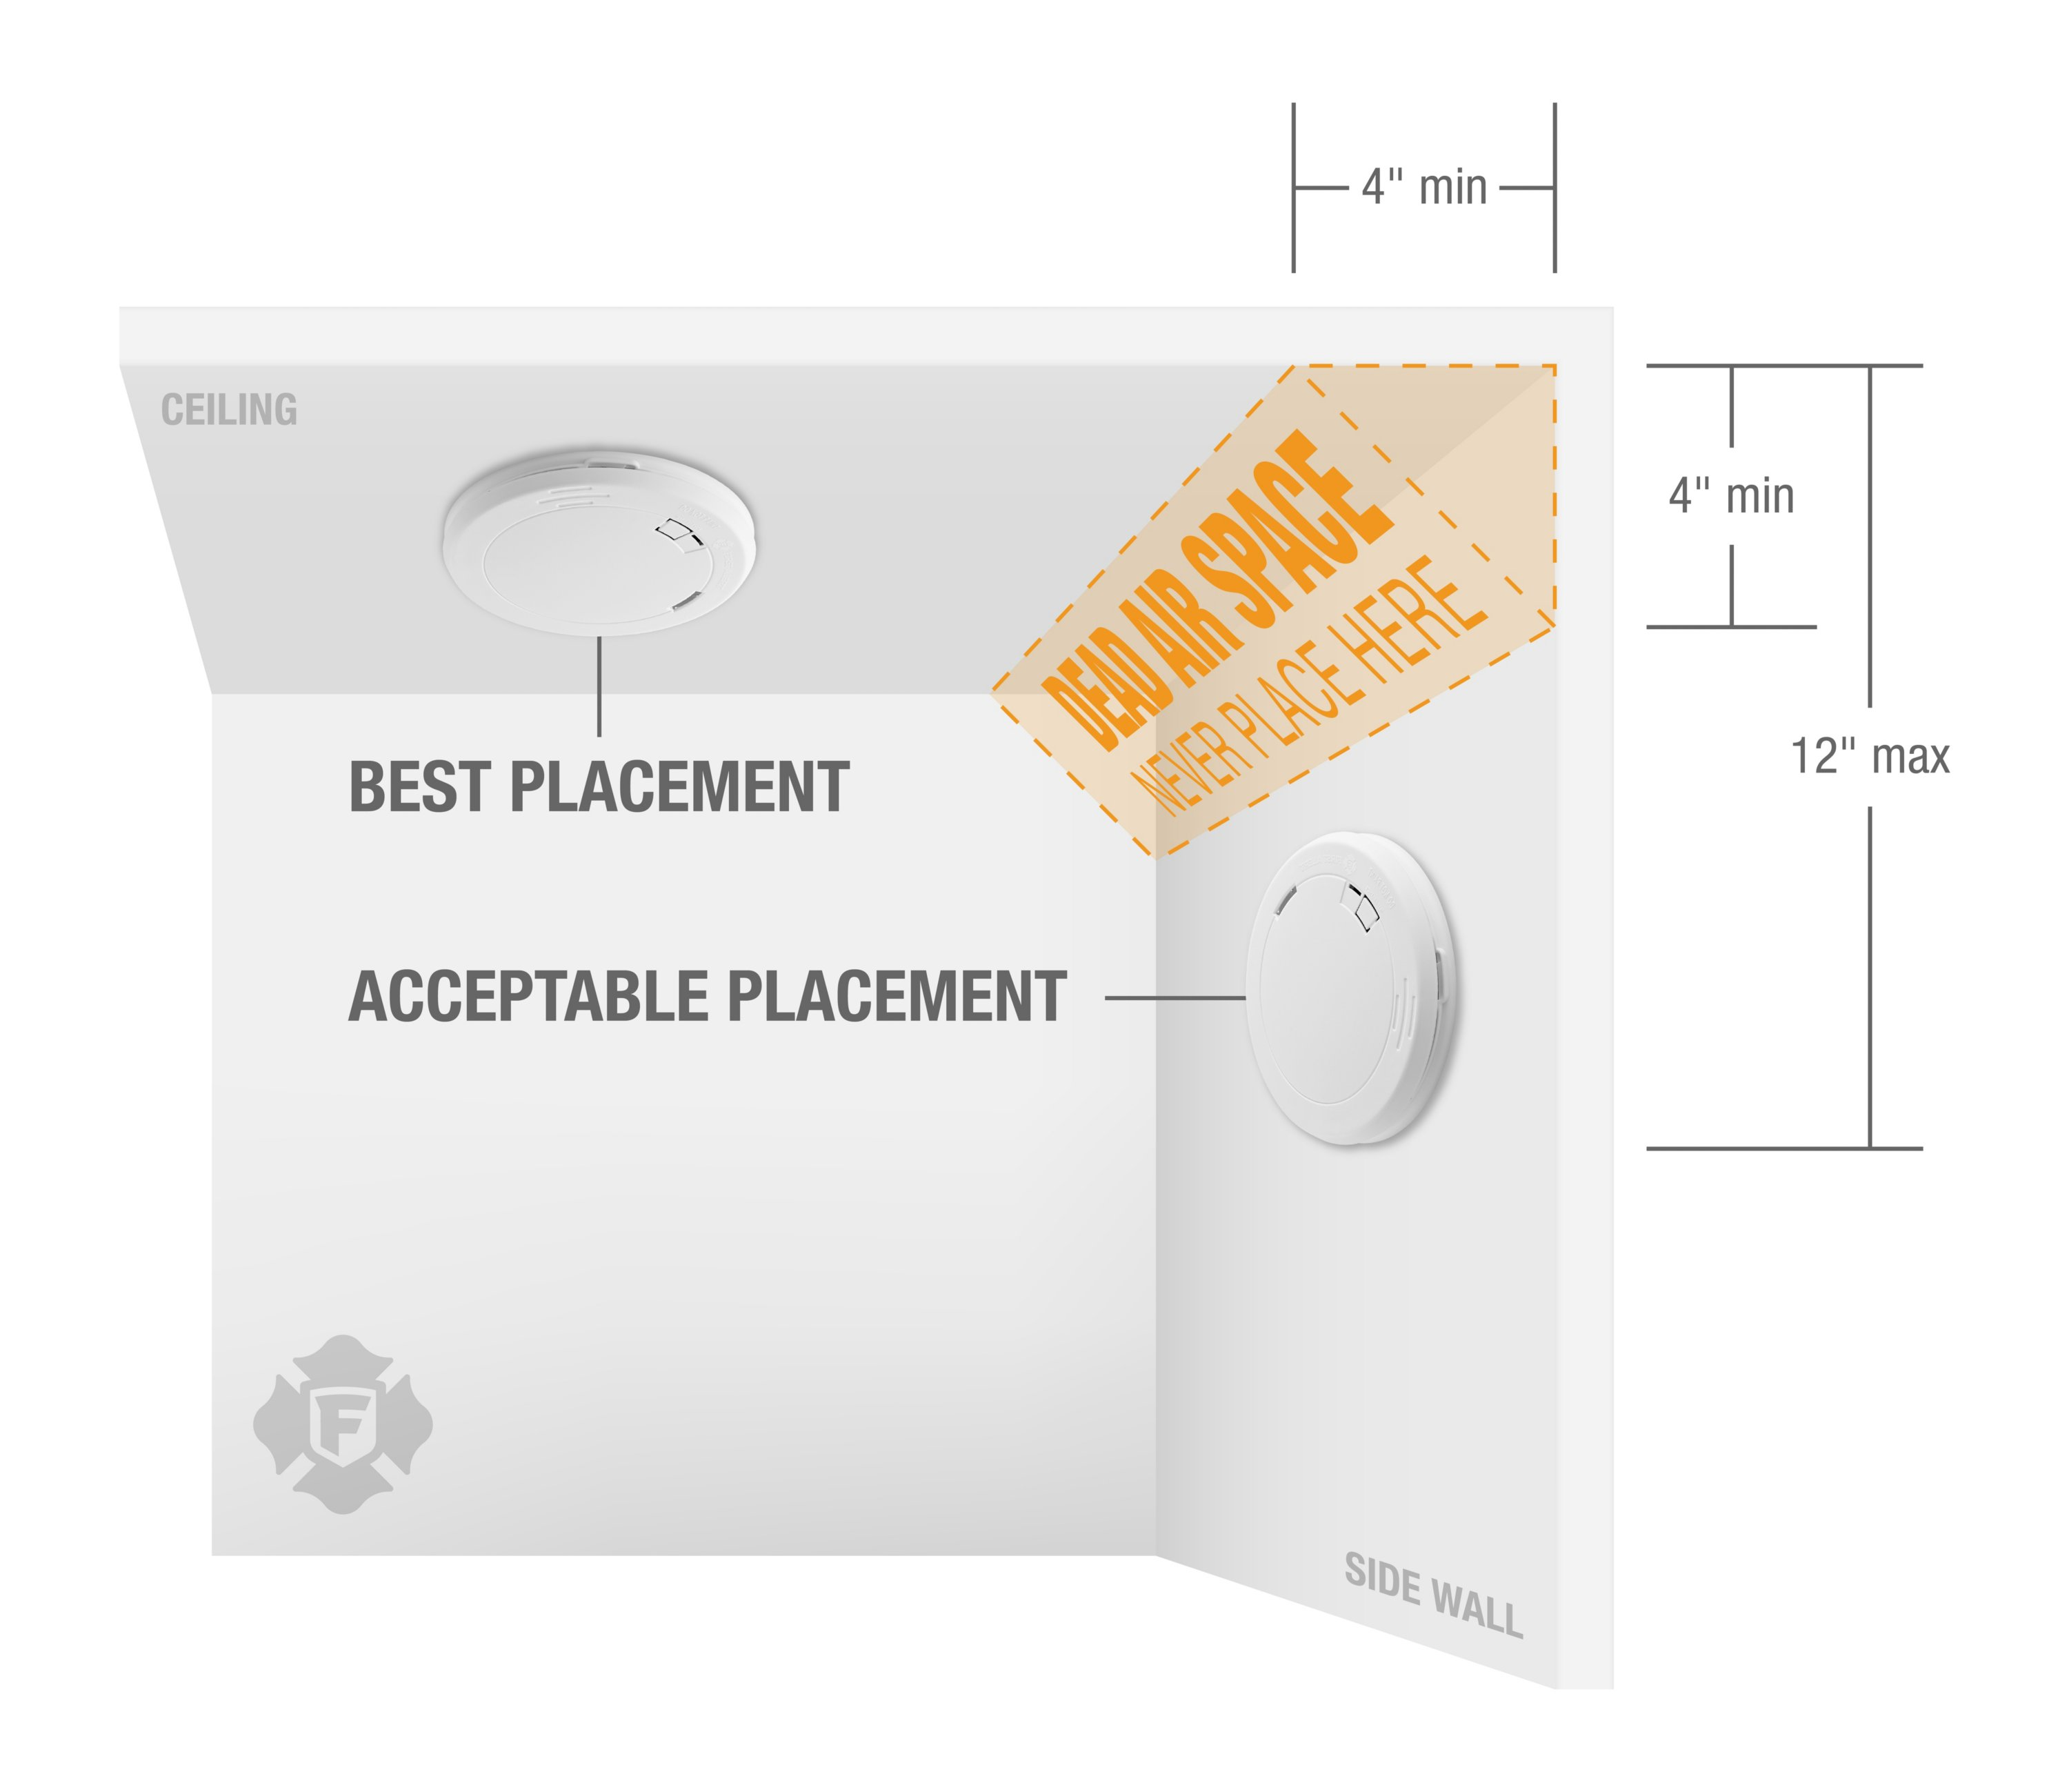 Placement of Smoke Detectors